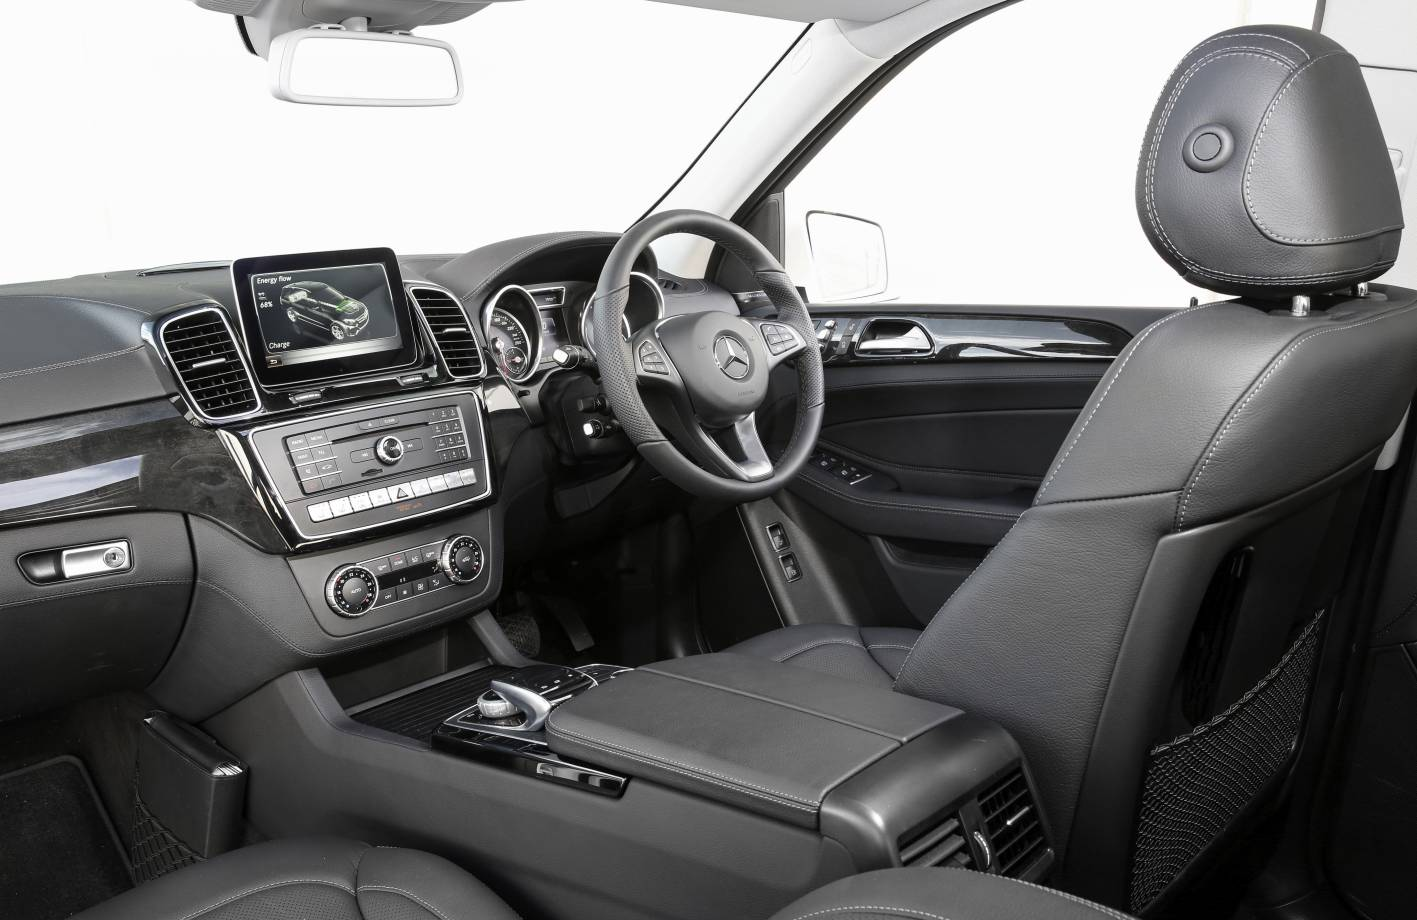 Cars are not treated differently from other consumer products under the law, but some carmakers clearly believe they are exempt from complying